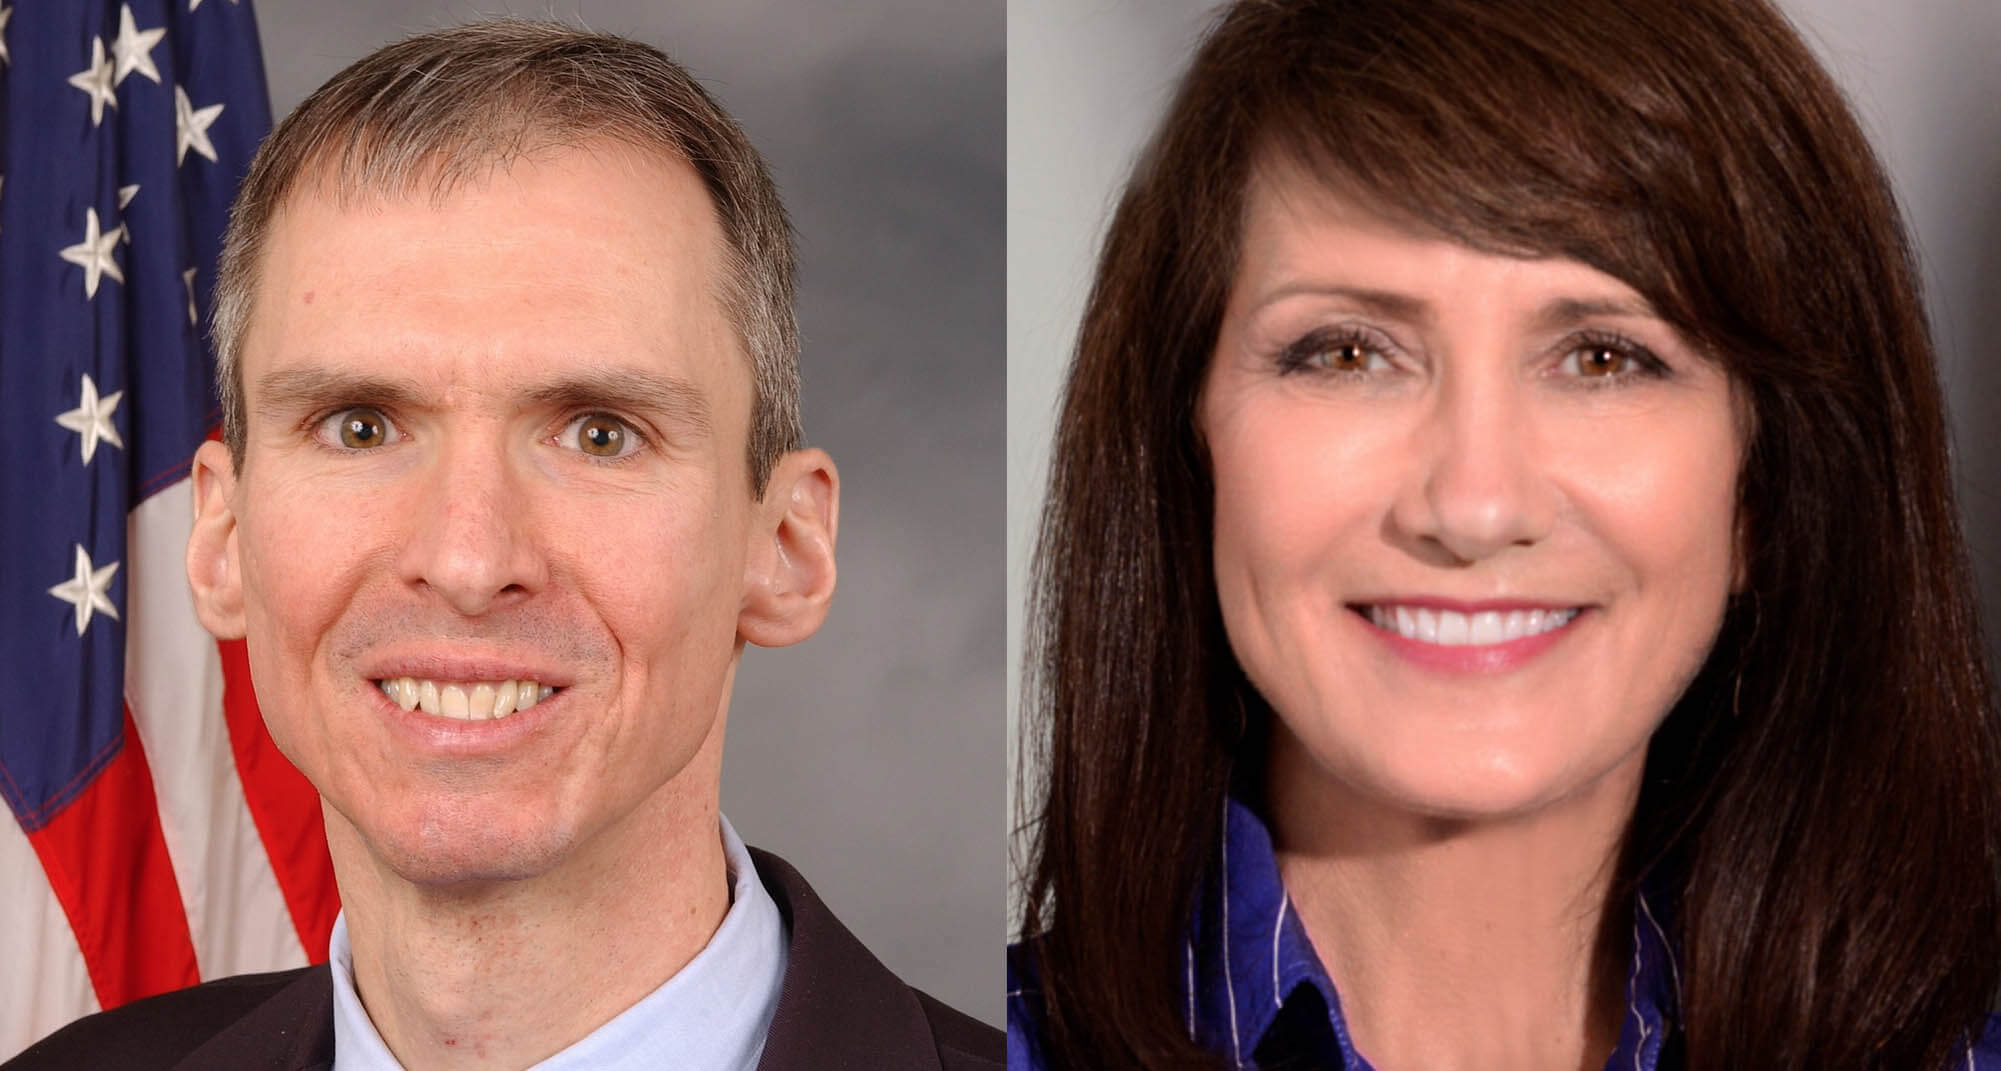 War heats up between Lipinski and challenger Newman